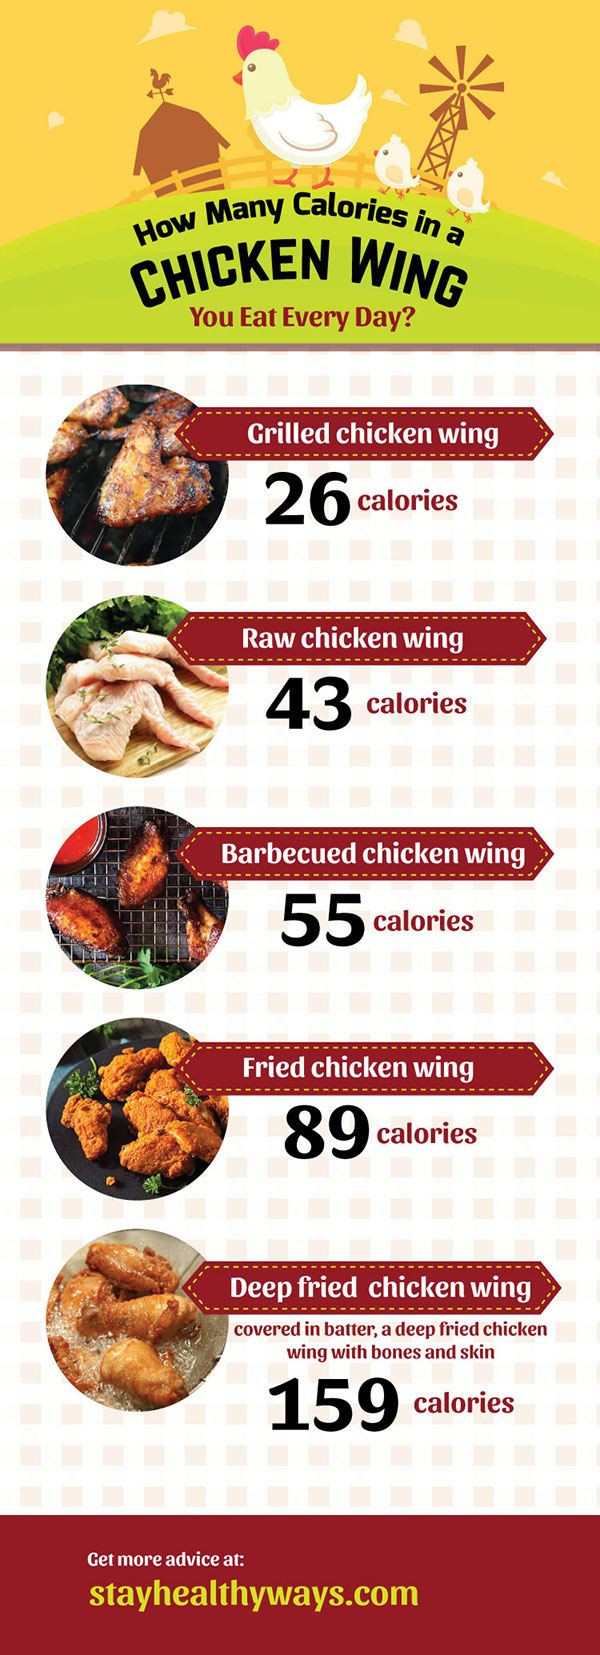 Calories Chicken Wings  How Many Calories In A Chicken Wing You Eat Every Day